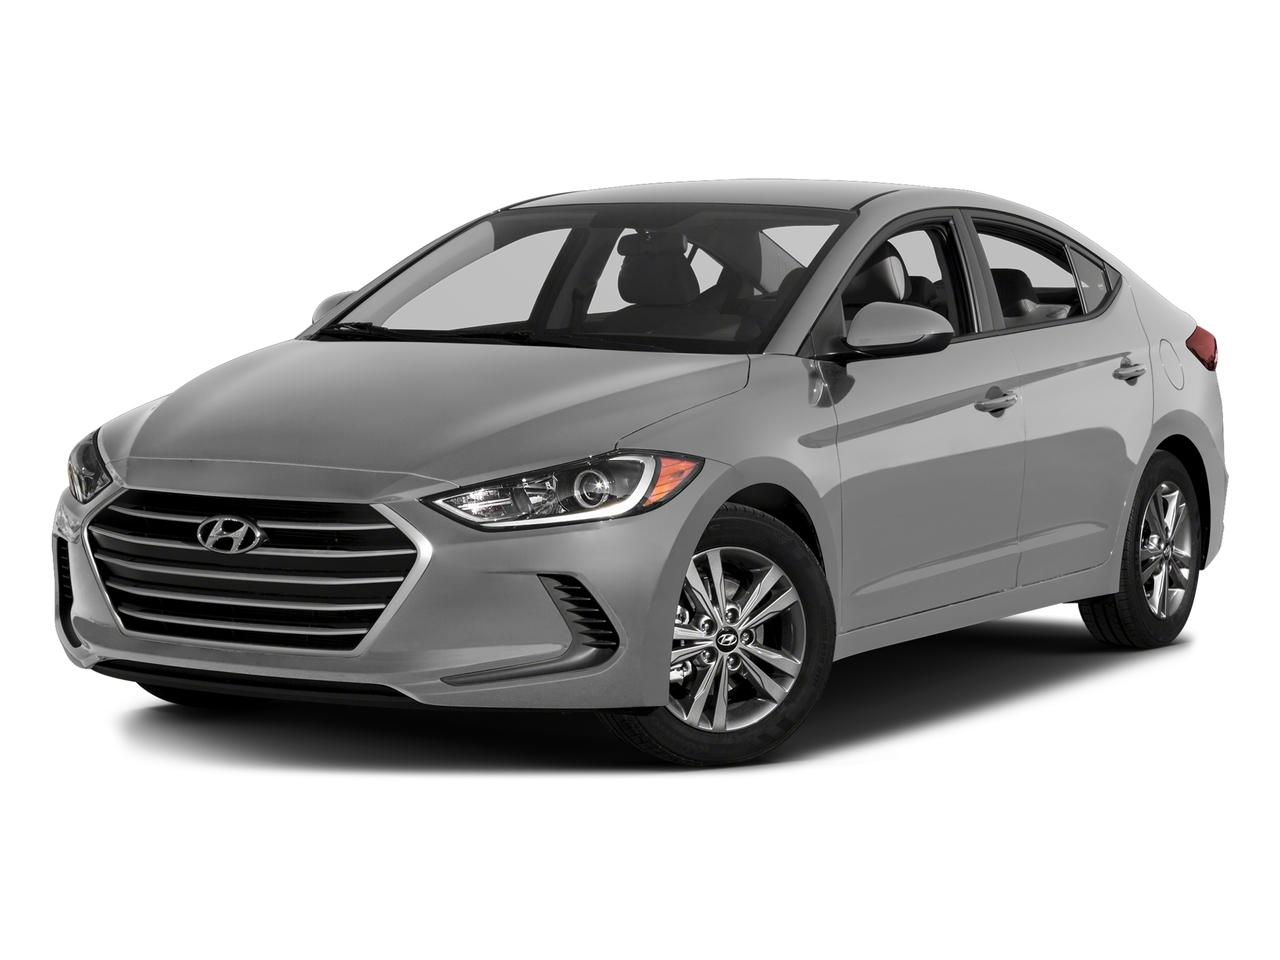 2018 Hyundai Elantra Vehicle Photo in Nashua, NH 03060